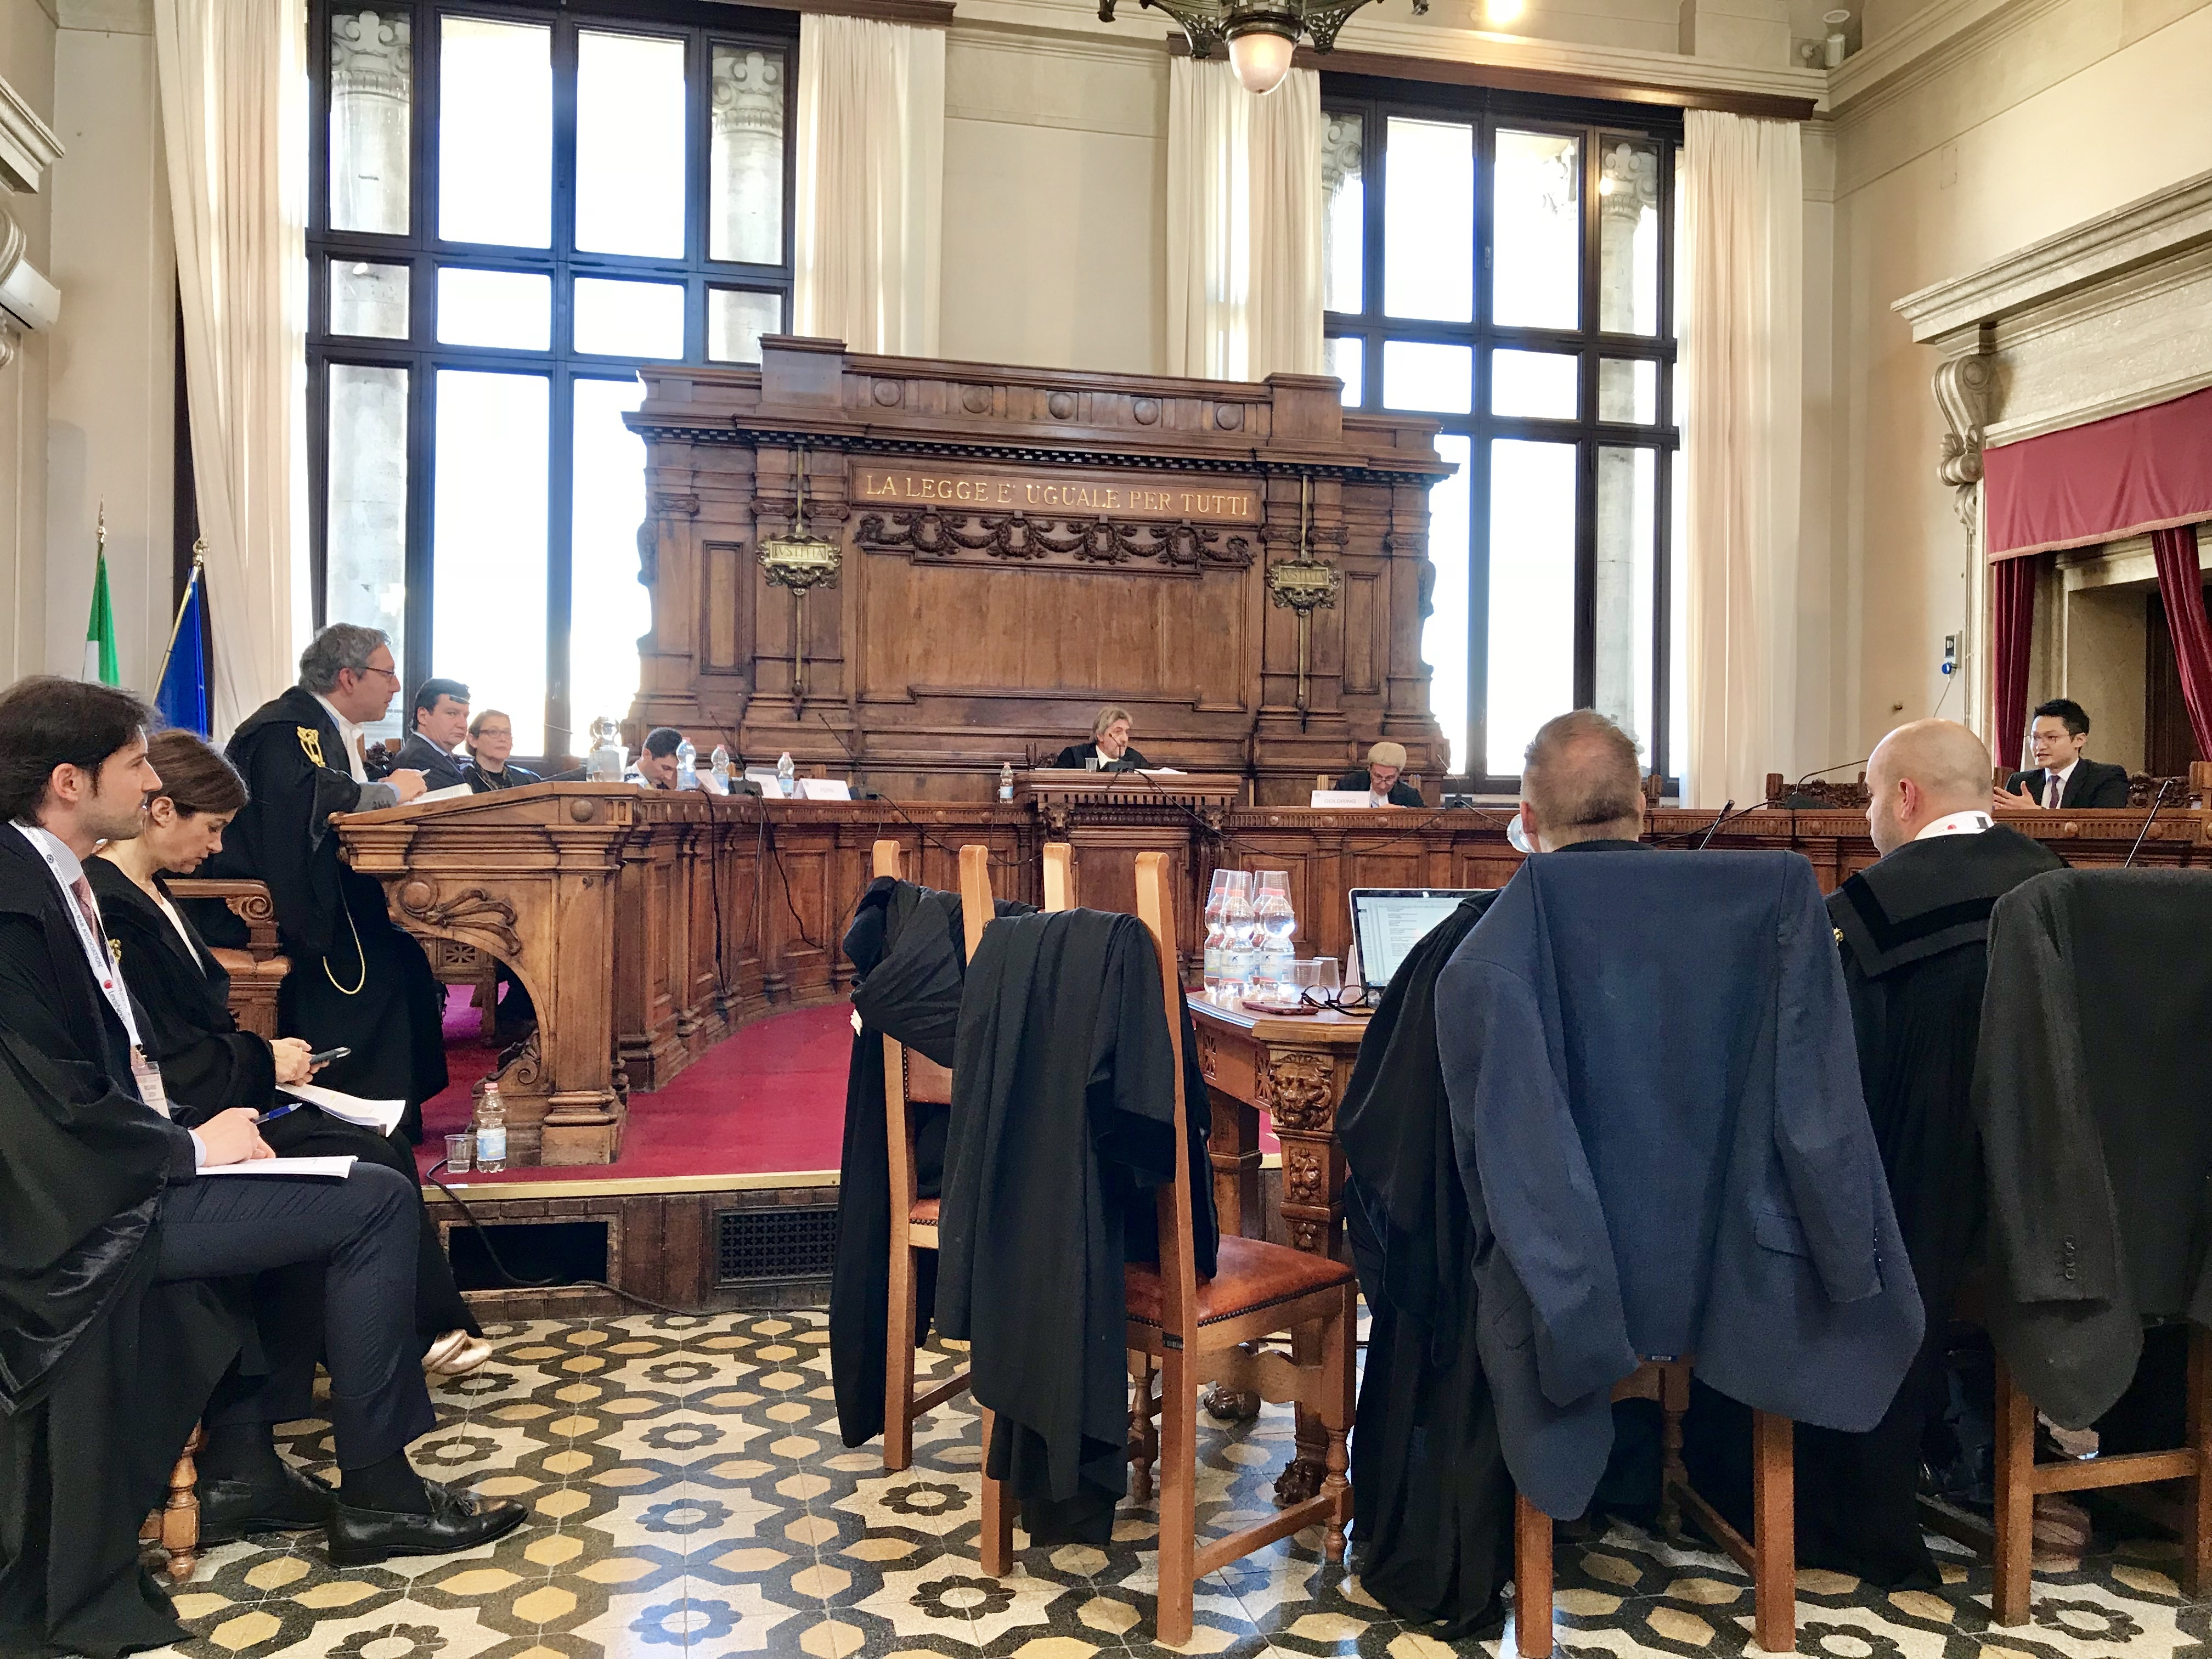 IBA Rome Mock Trial Court Room - 最新消息